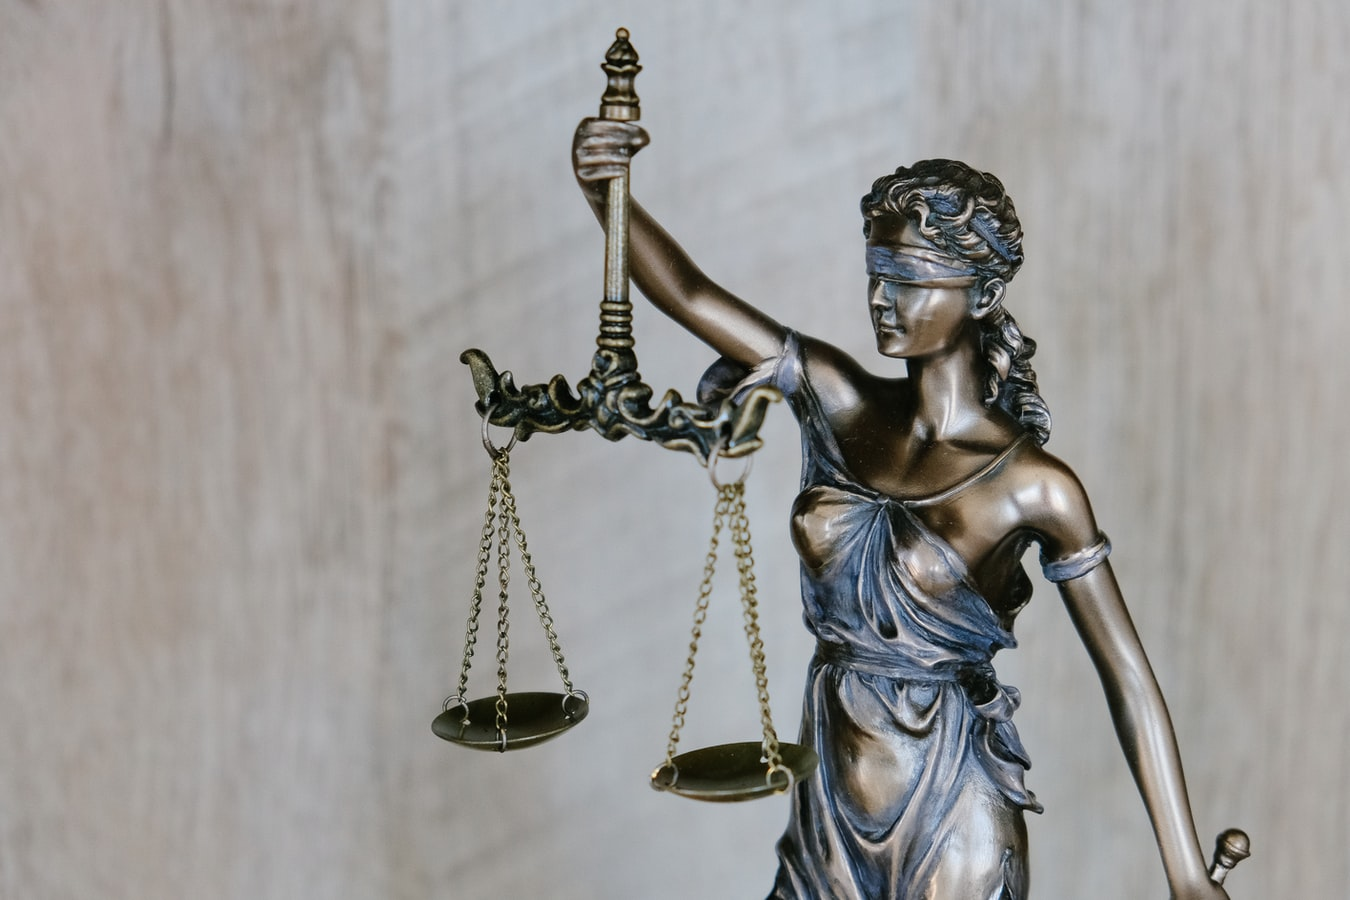 Things to Consider When Selecting a Real Estate Expert Witness